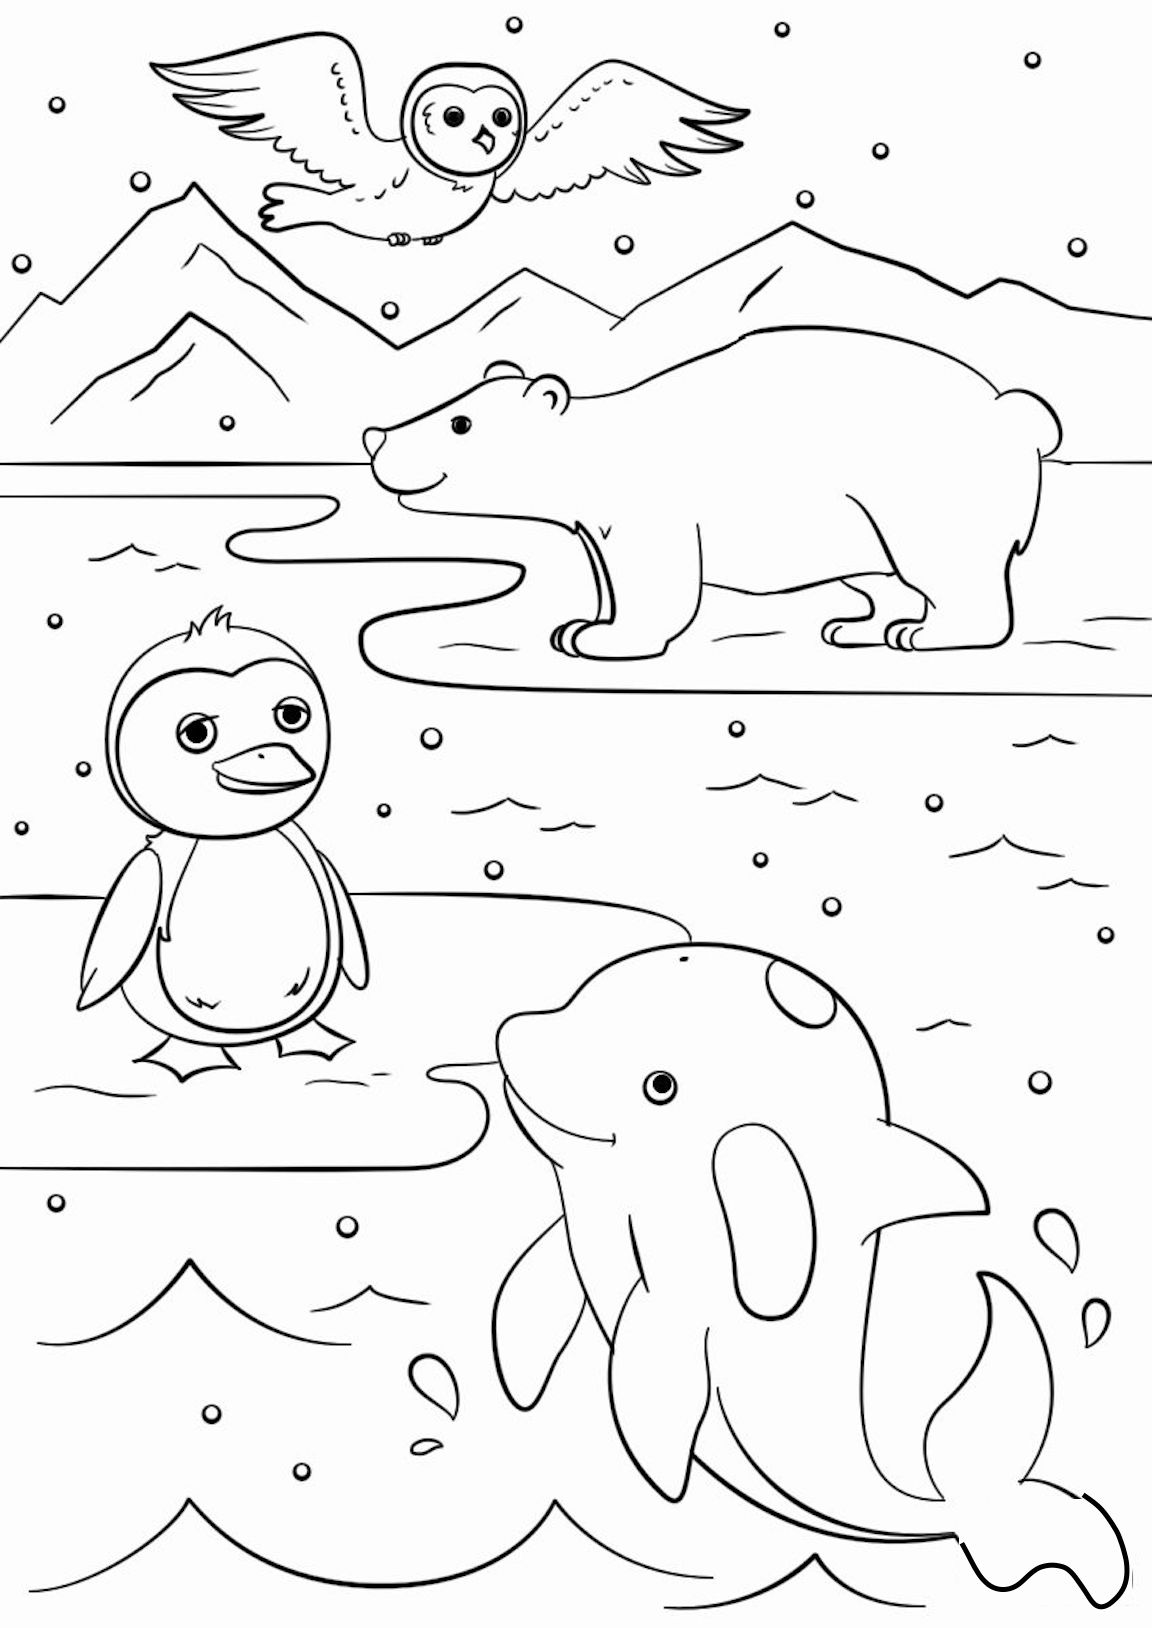 winter coloring winter season coloring pages crafts and worksheets for winter coloring